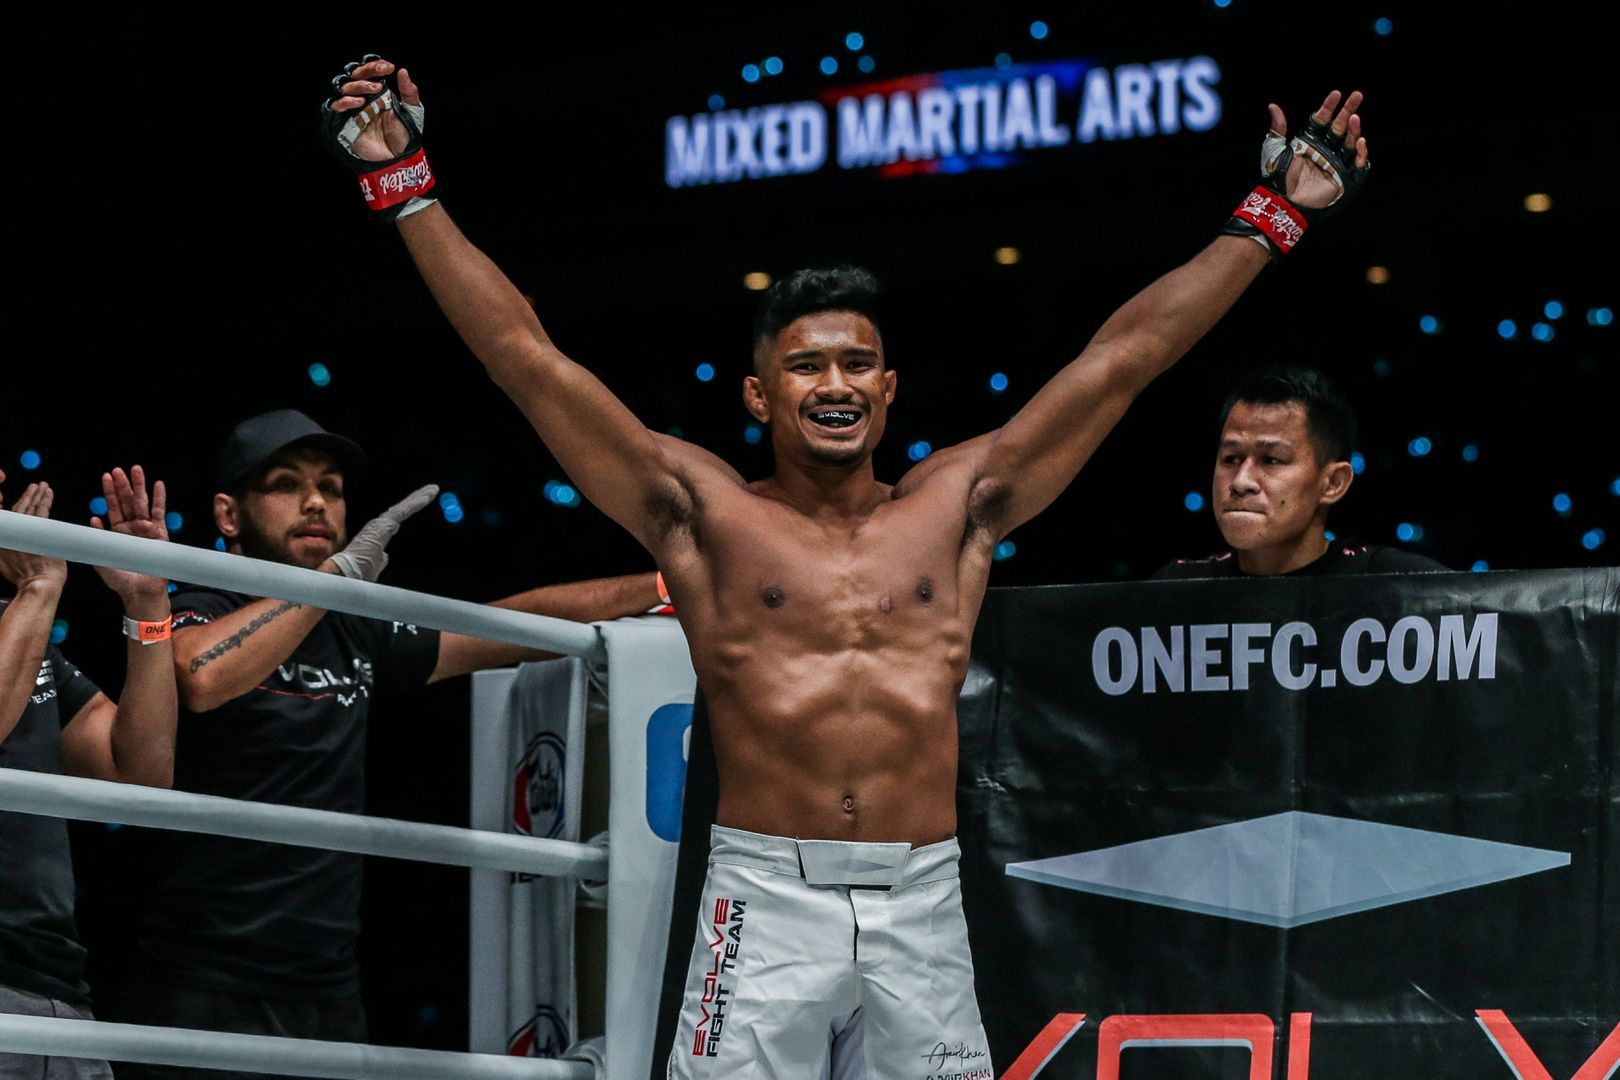 Singaporean mixed martial artist Amir Khan is ready for action